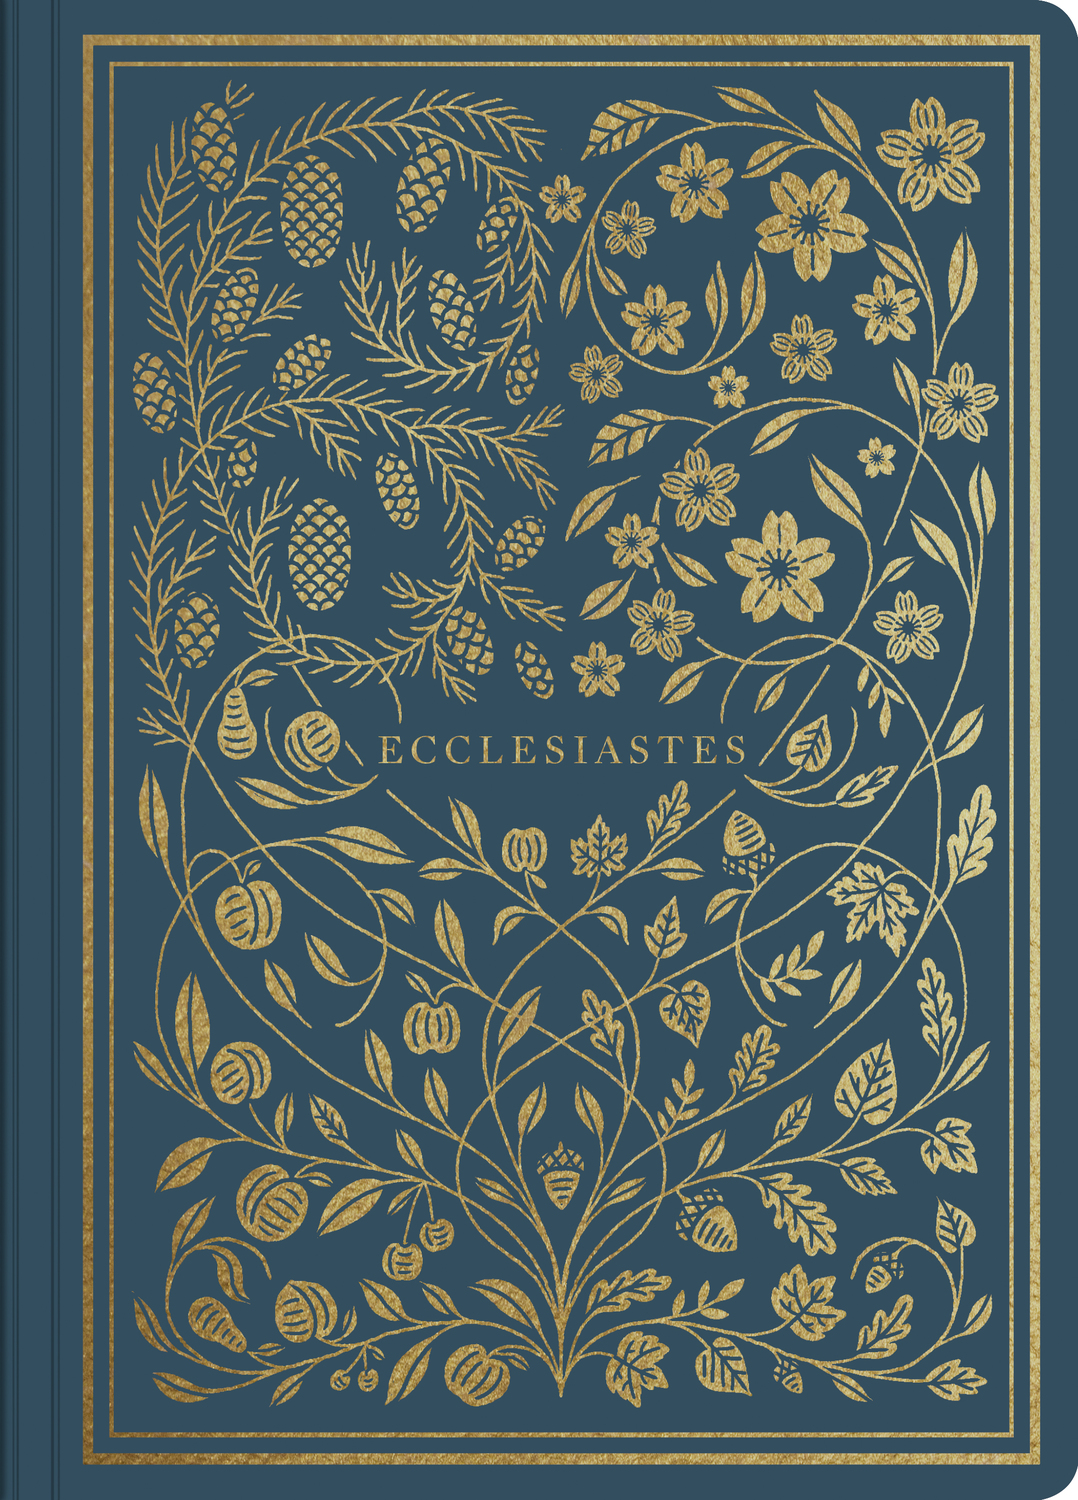 ESV Illuminated Scripture Journal: Ecclesiastes